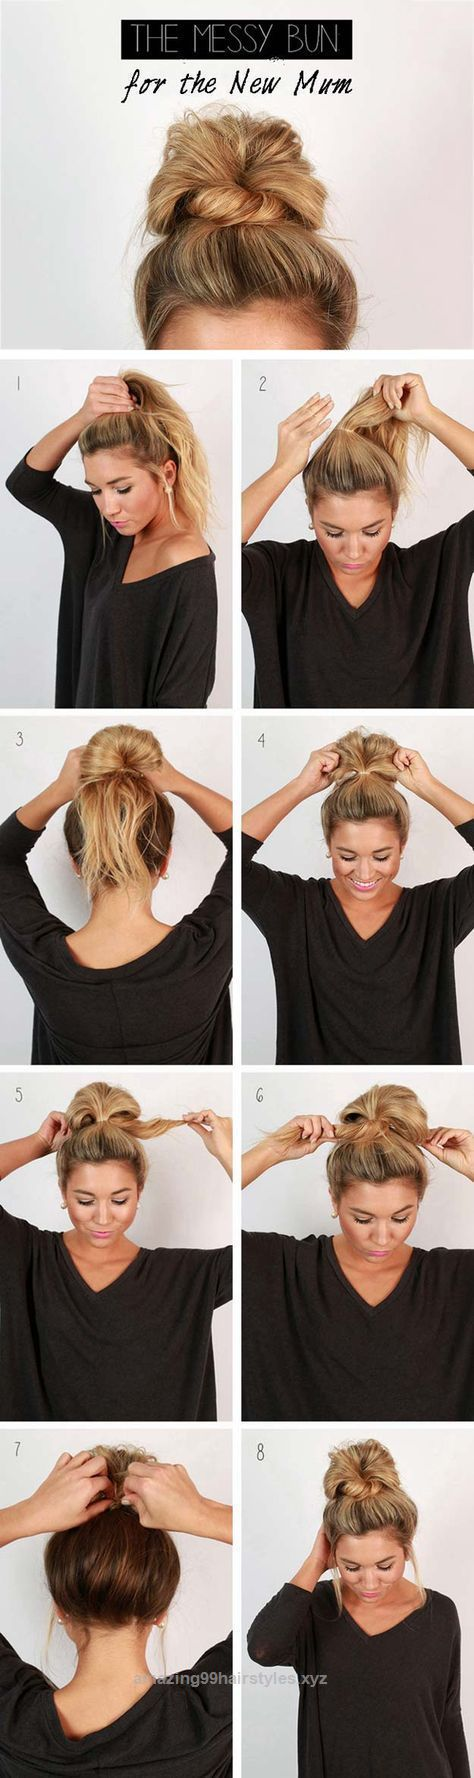 Superb Cool and Easy DIY Hairstyles – Messy Bun – Quick and Easy Ideas for Back to School Styles for Medium, Short and Long Hair – Fun Tips and Best Step by Step Tutorials for Teens, Prom, Wedd ..